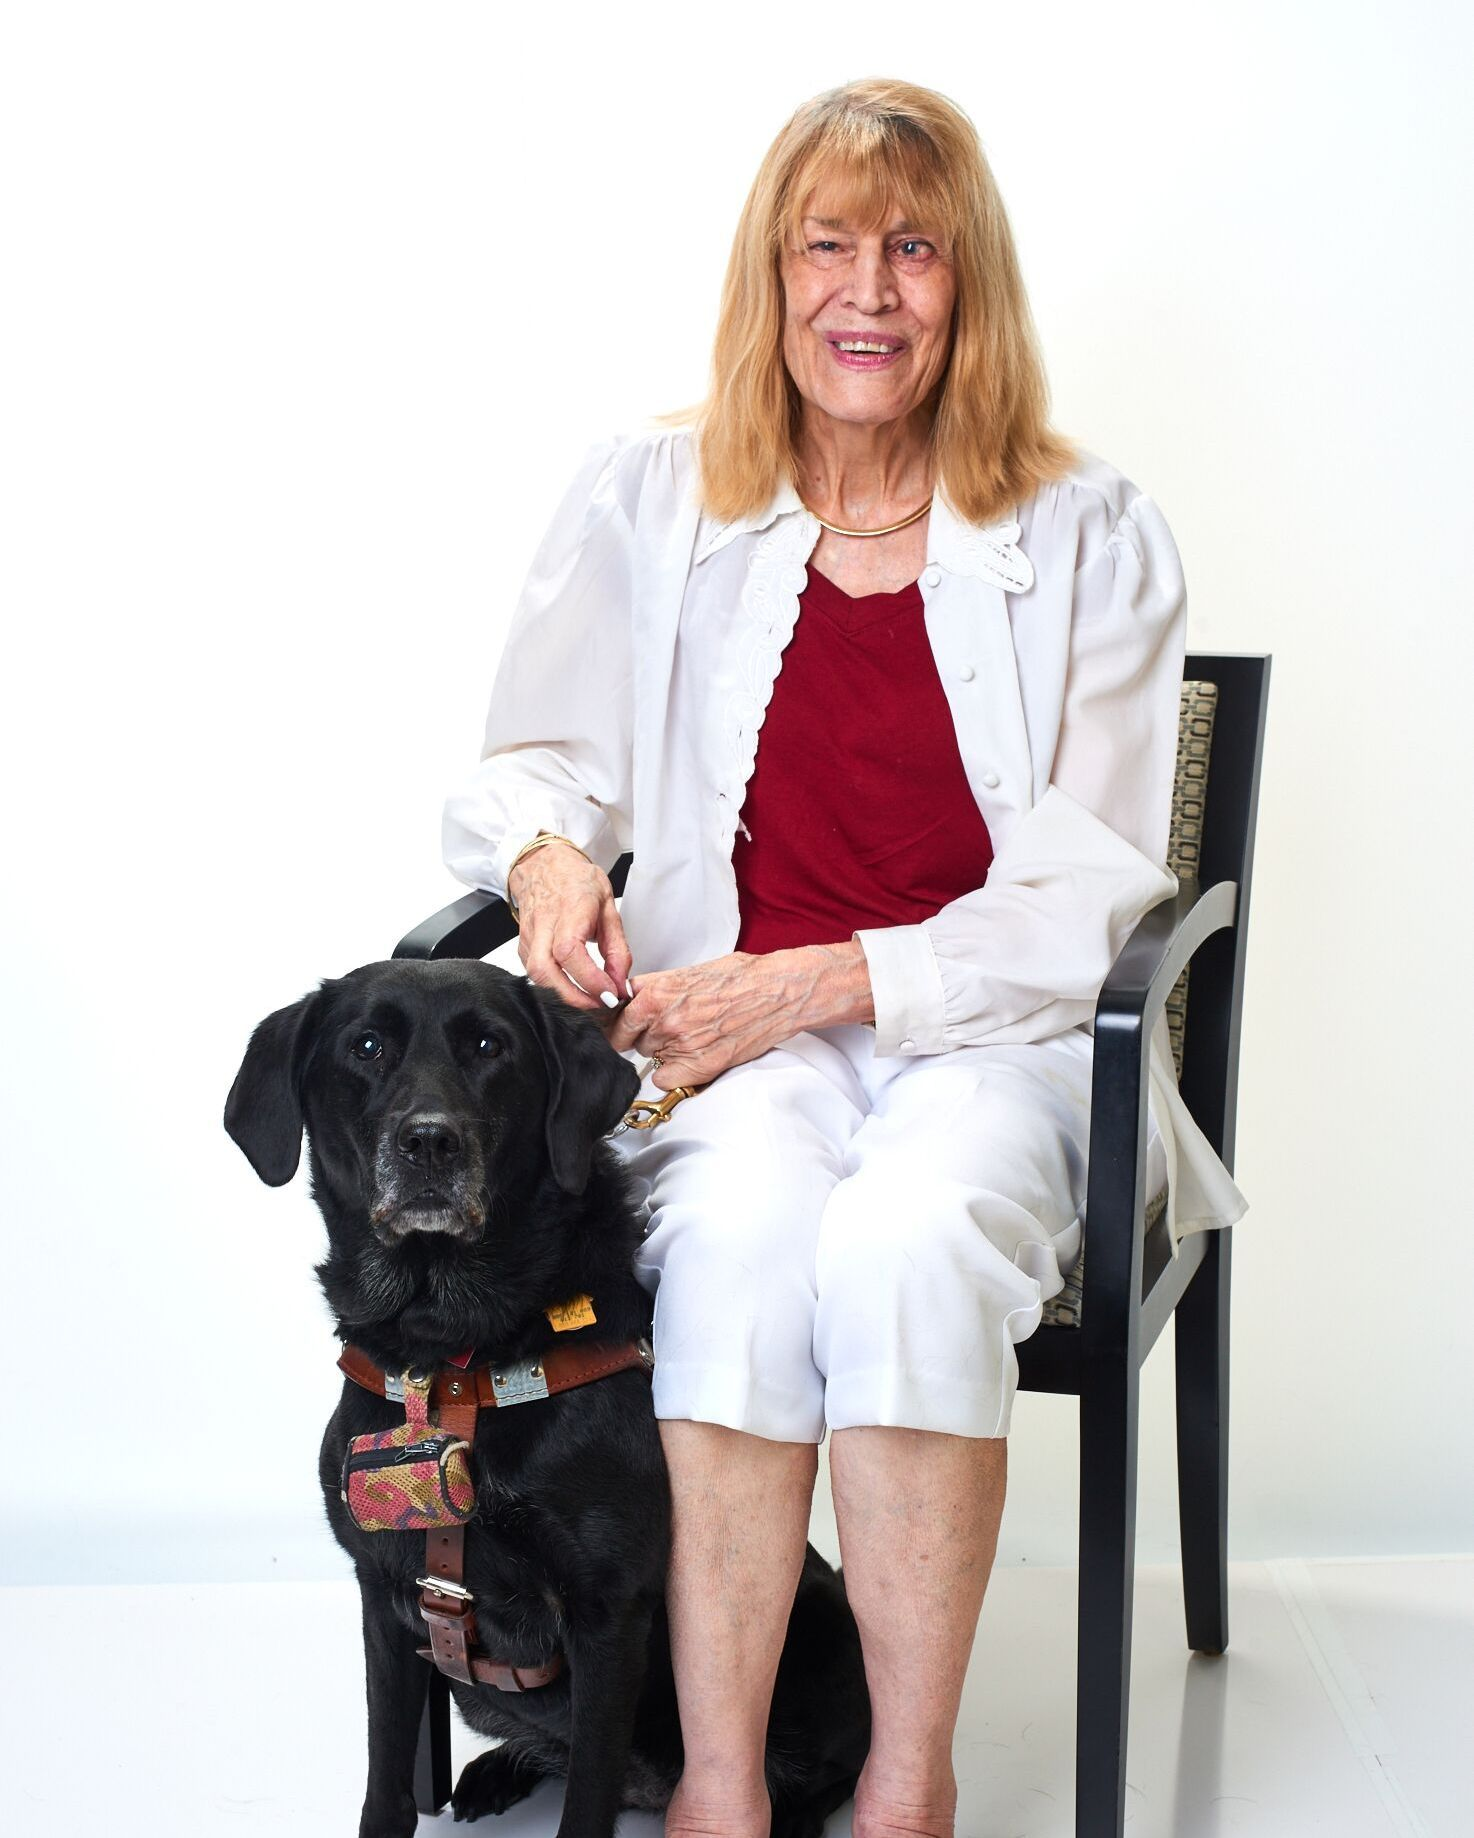 Happy International Guide Dog Day from AMC! We're so proud